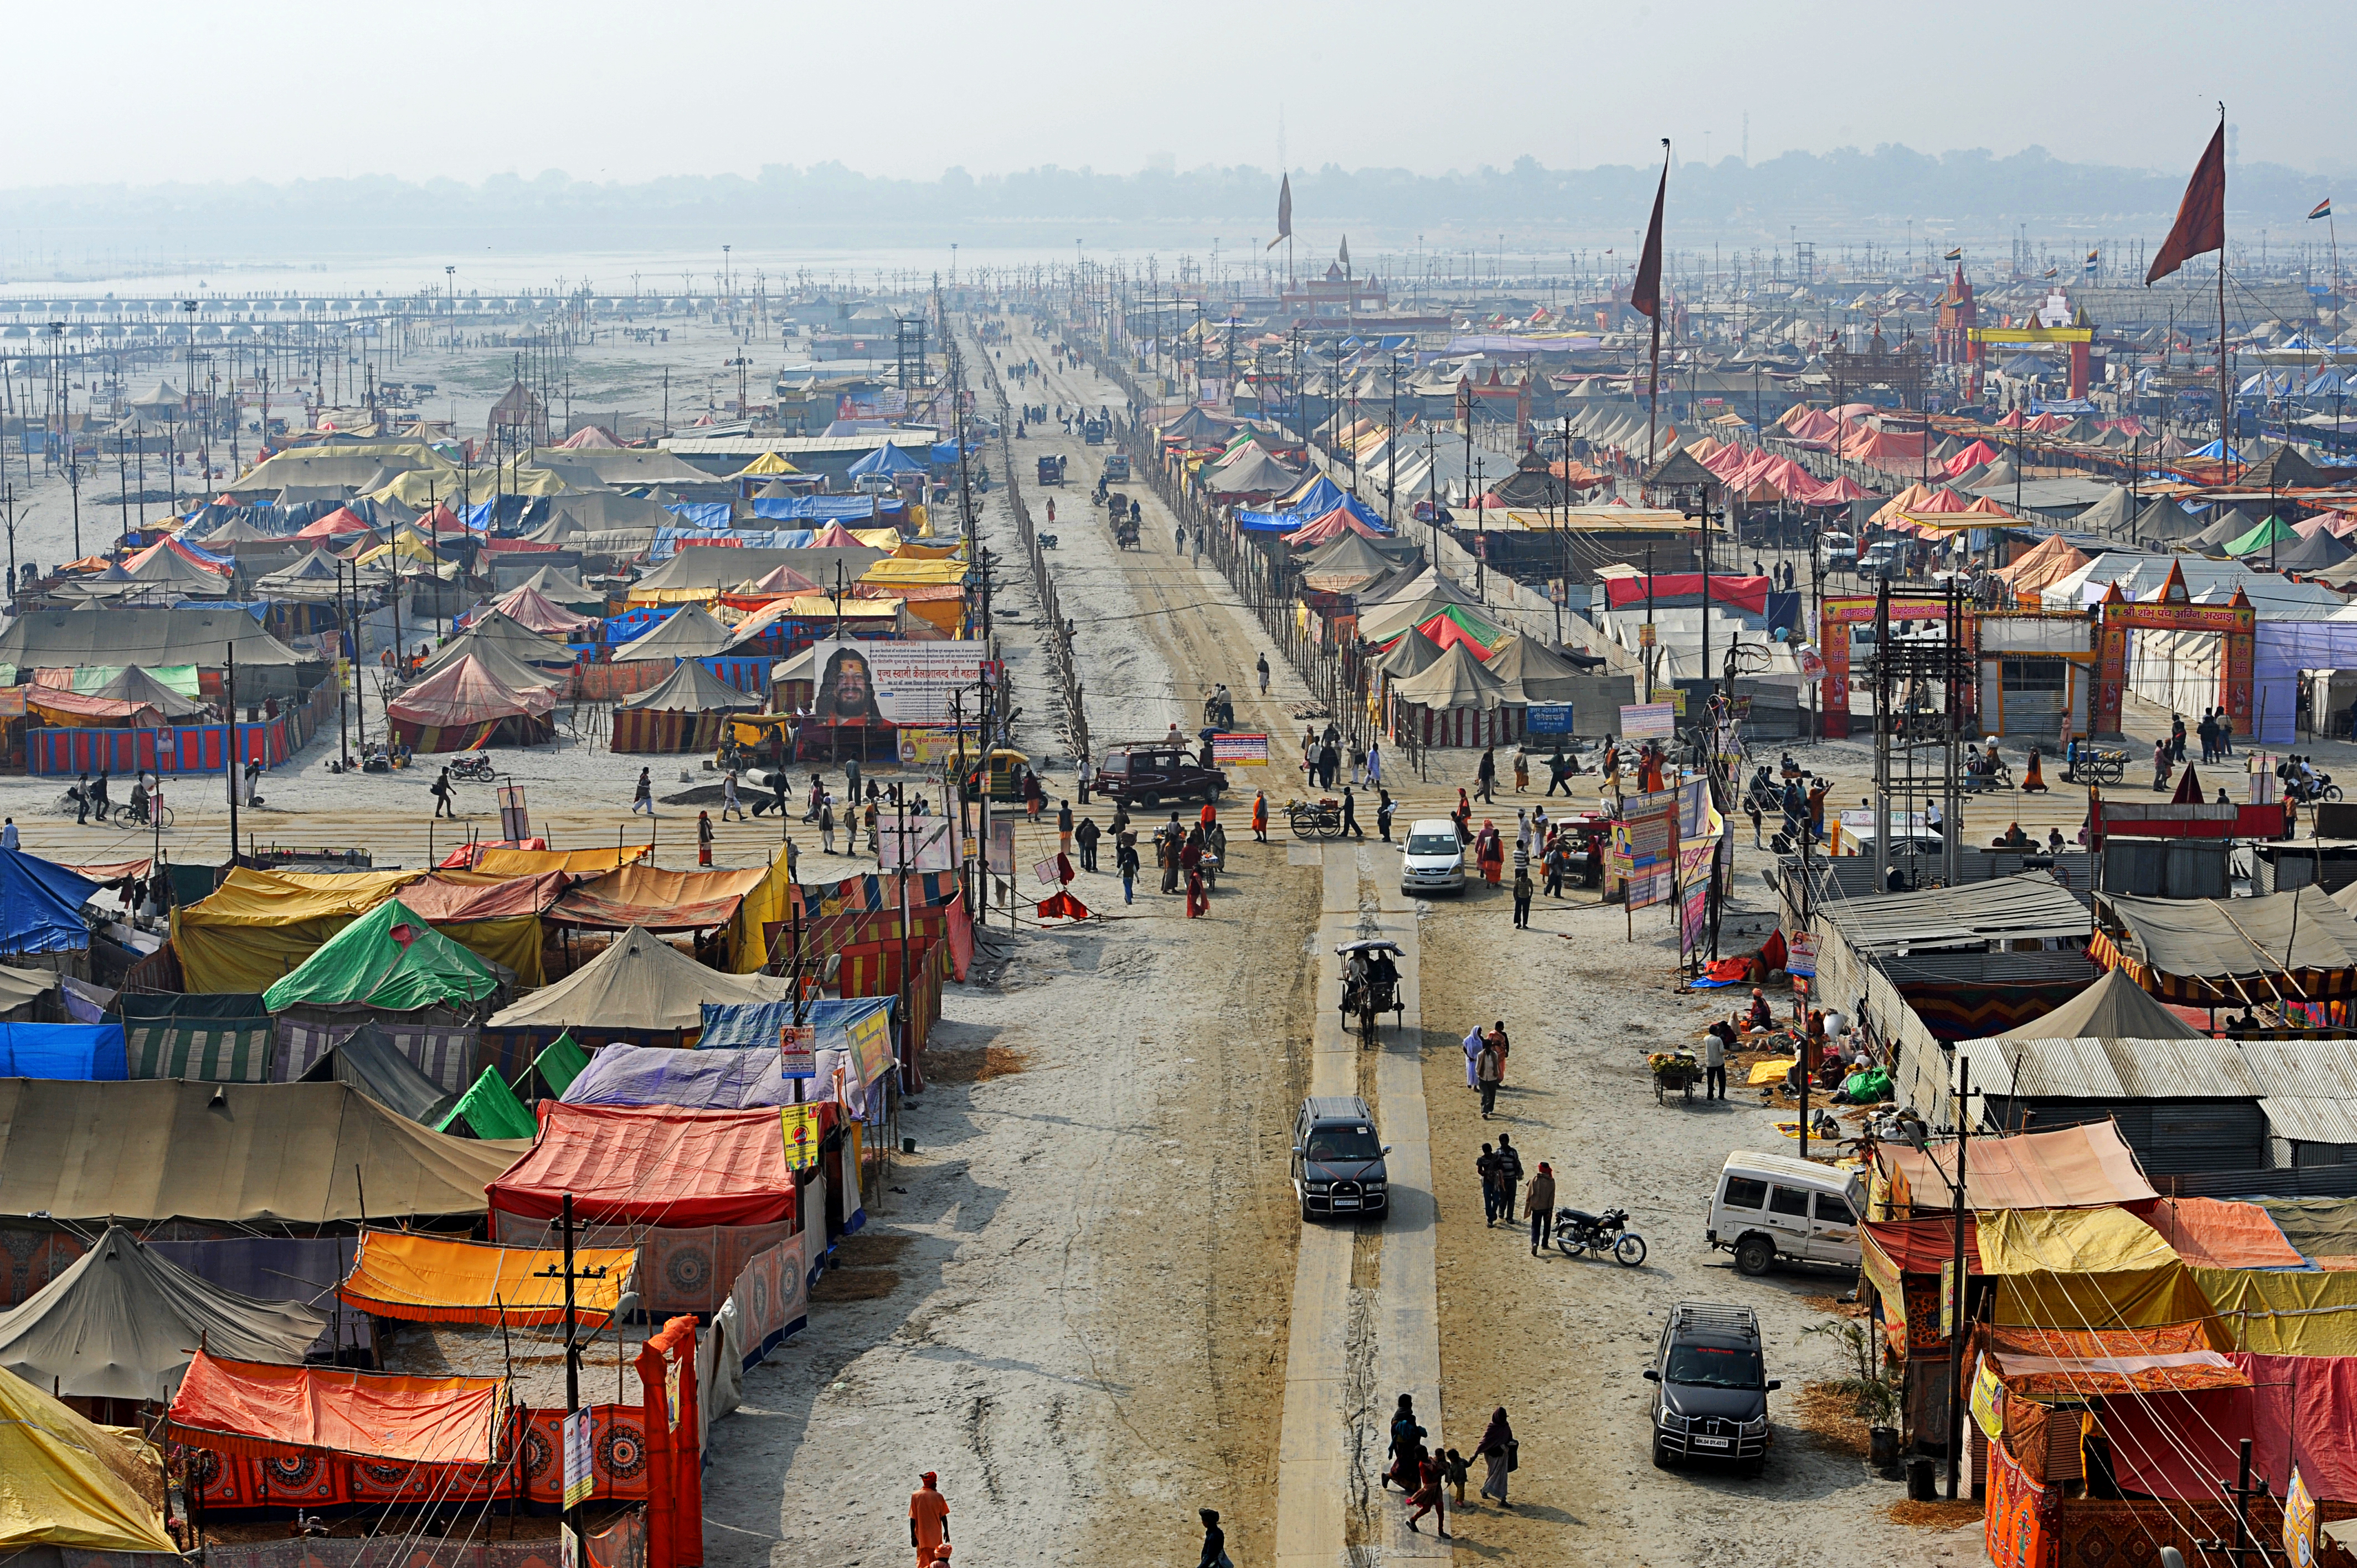 View of kumbh mela SOURCE Felipe Vera